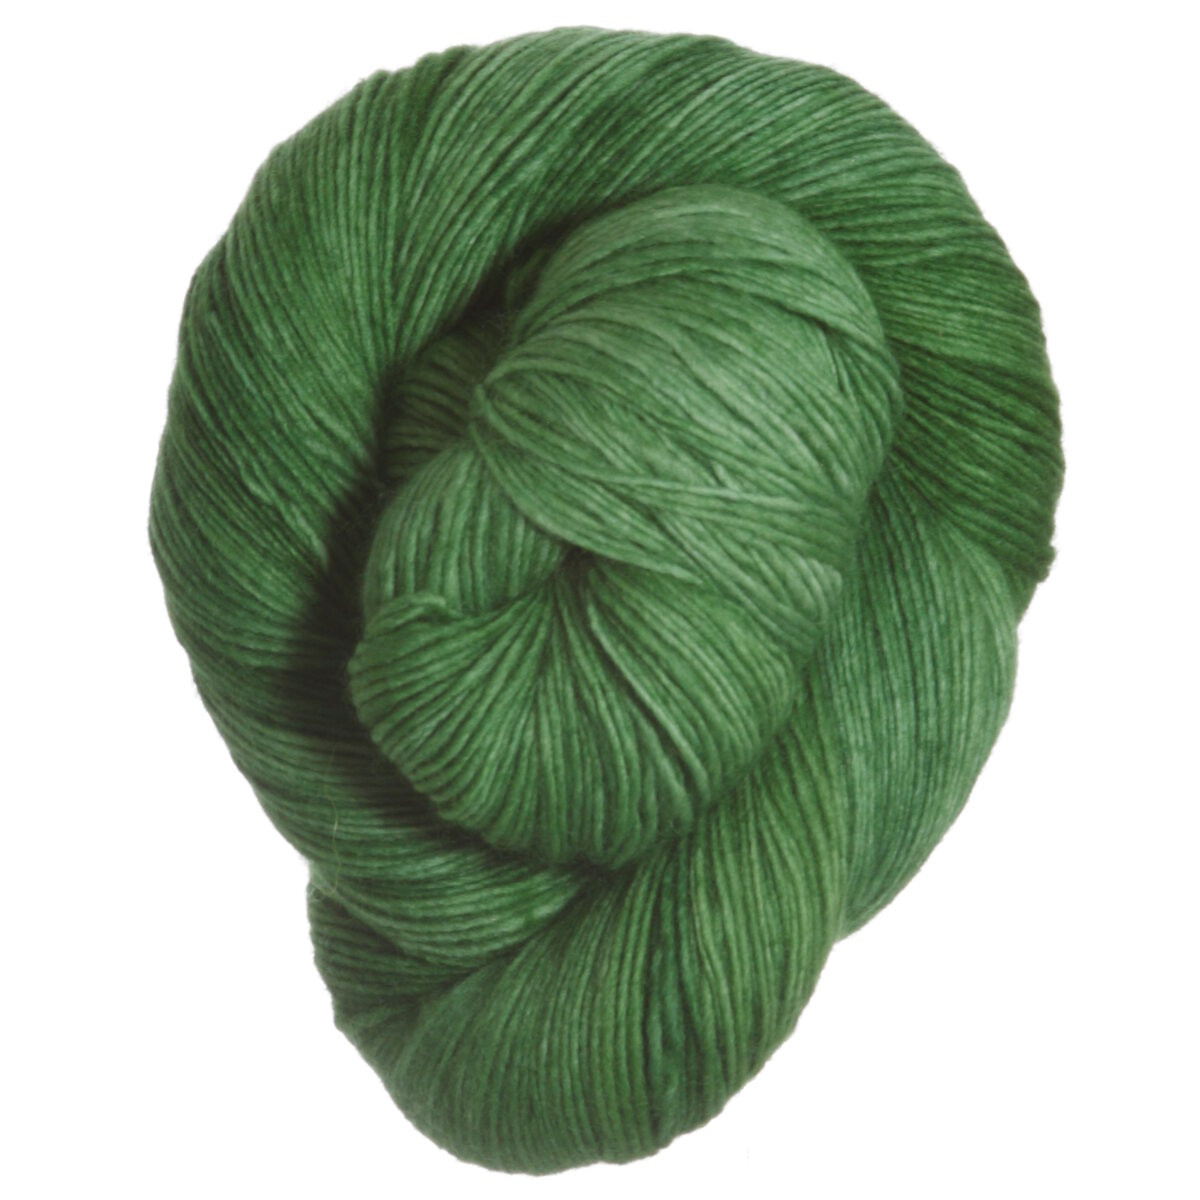 Lace Yarn Beautiful Malabrigo Lace Baby Merino Yarn 117 Verde Adriana at Of Amazing 44 Pictures Lace Yarn